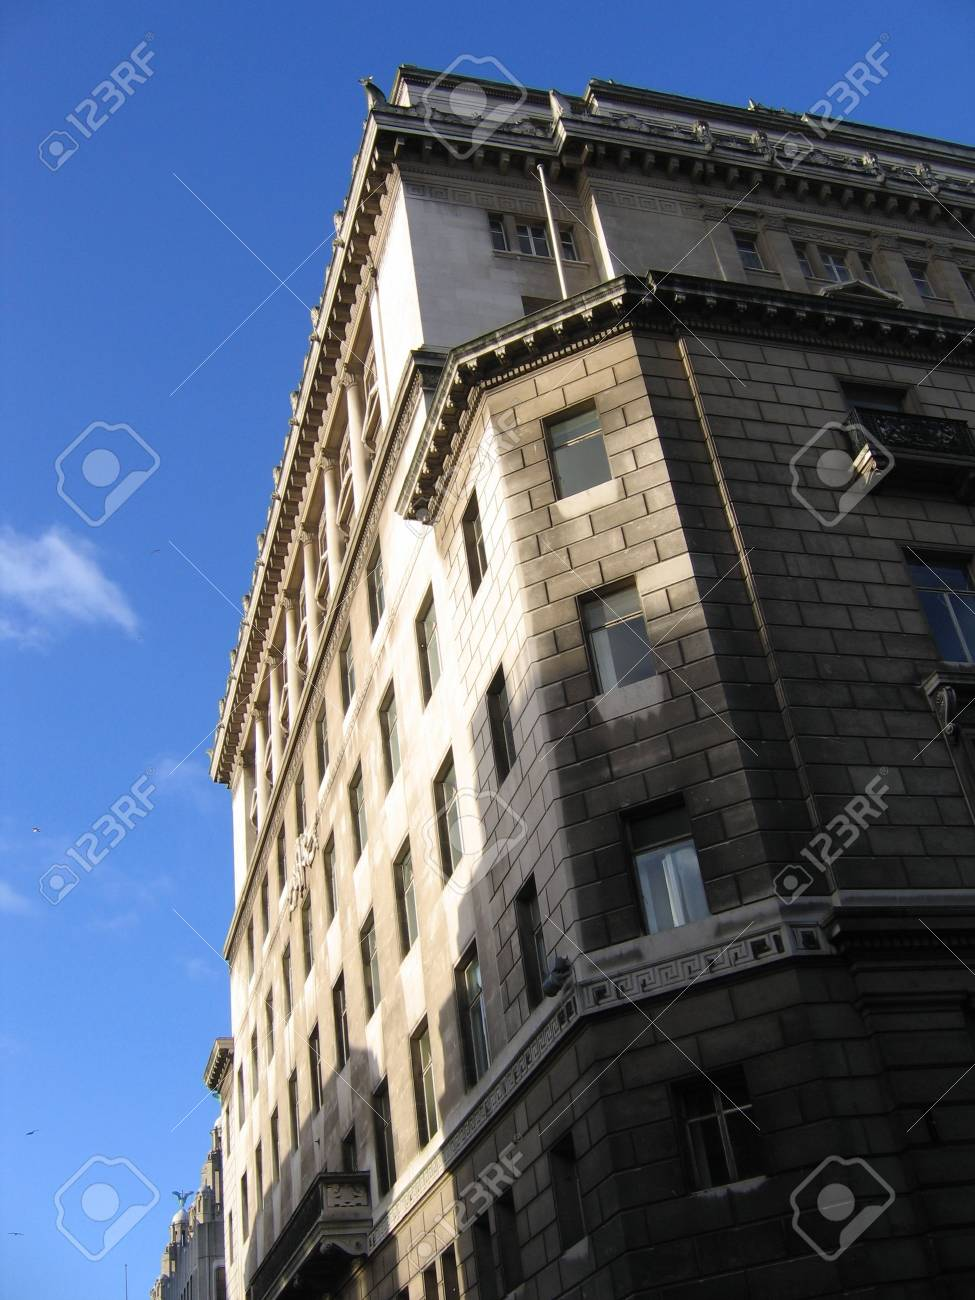 Grand Building in Liverpool England Stock Photo - 358908